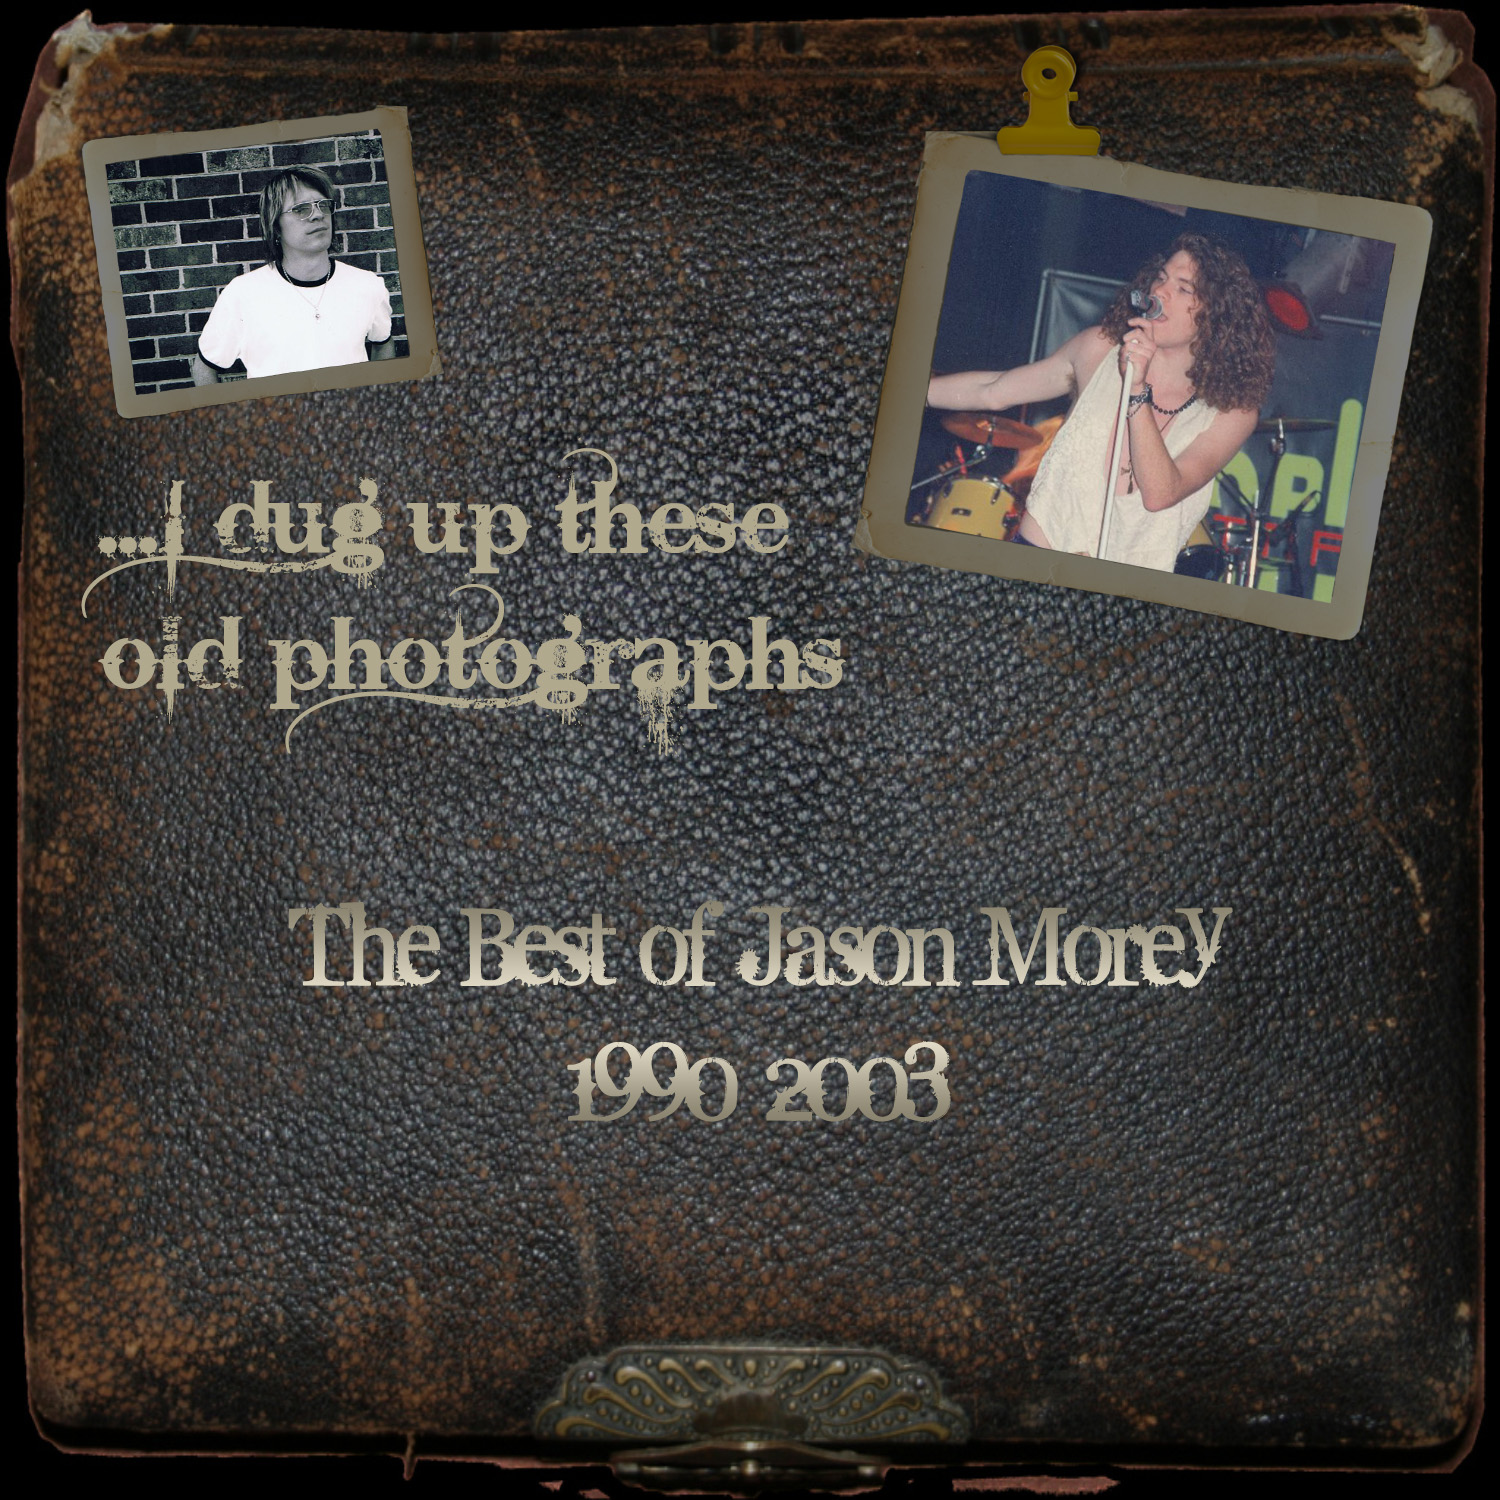 Jason Morey - ...I dug up these old photographs - The Best of Jason Morey 1990-2003